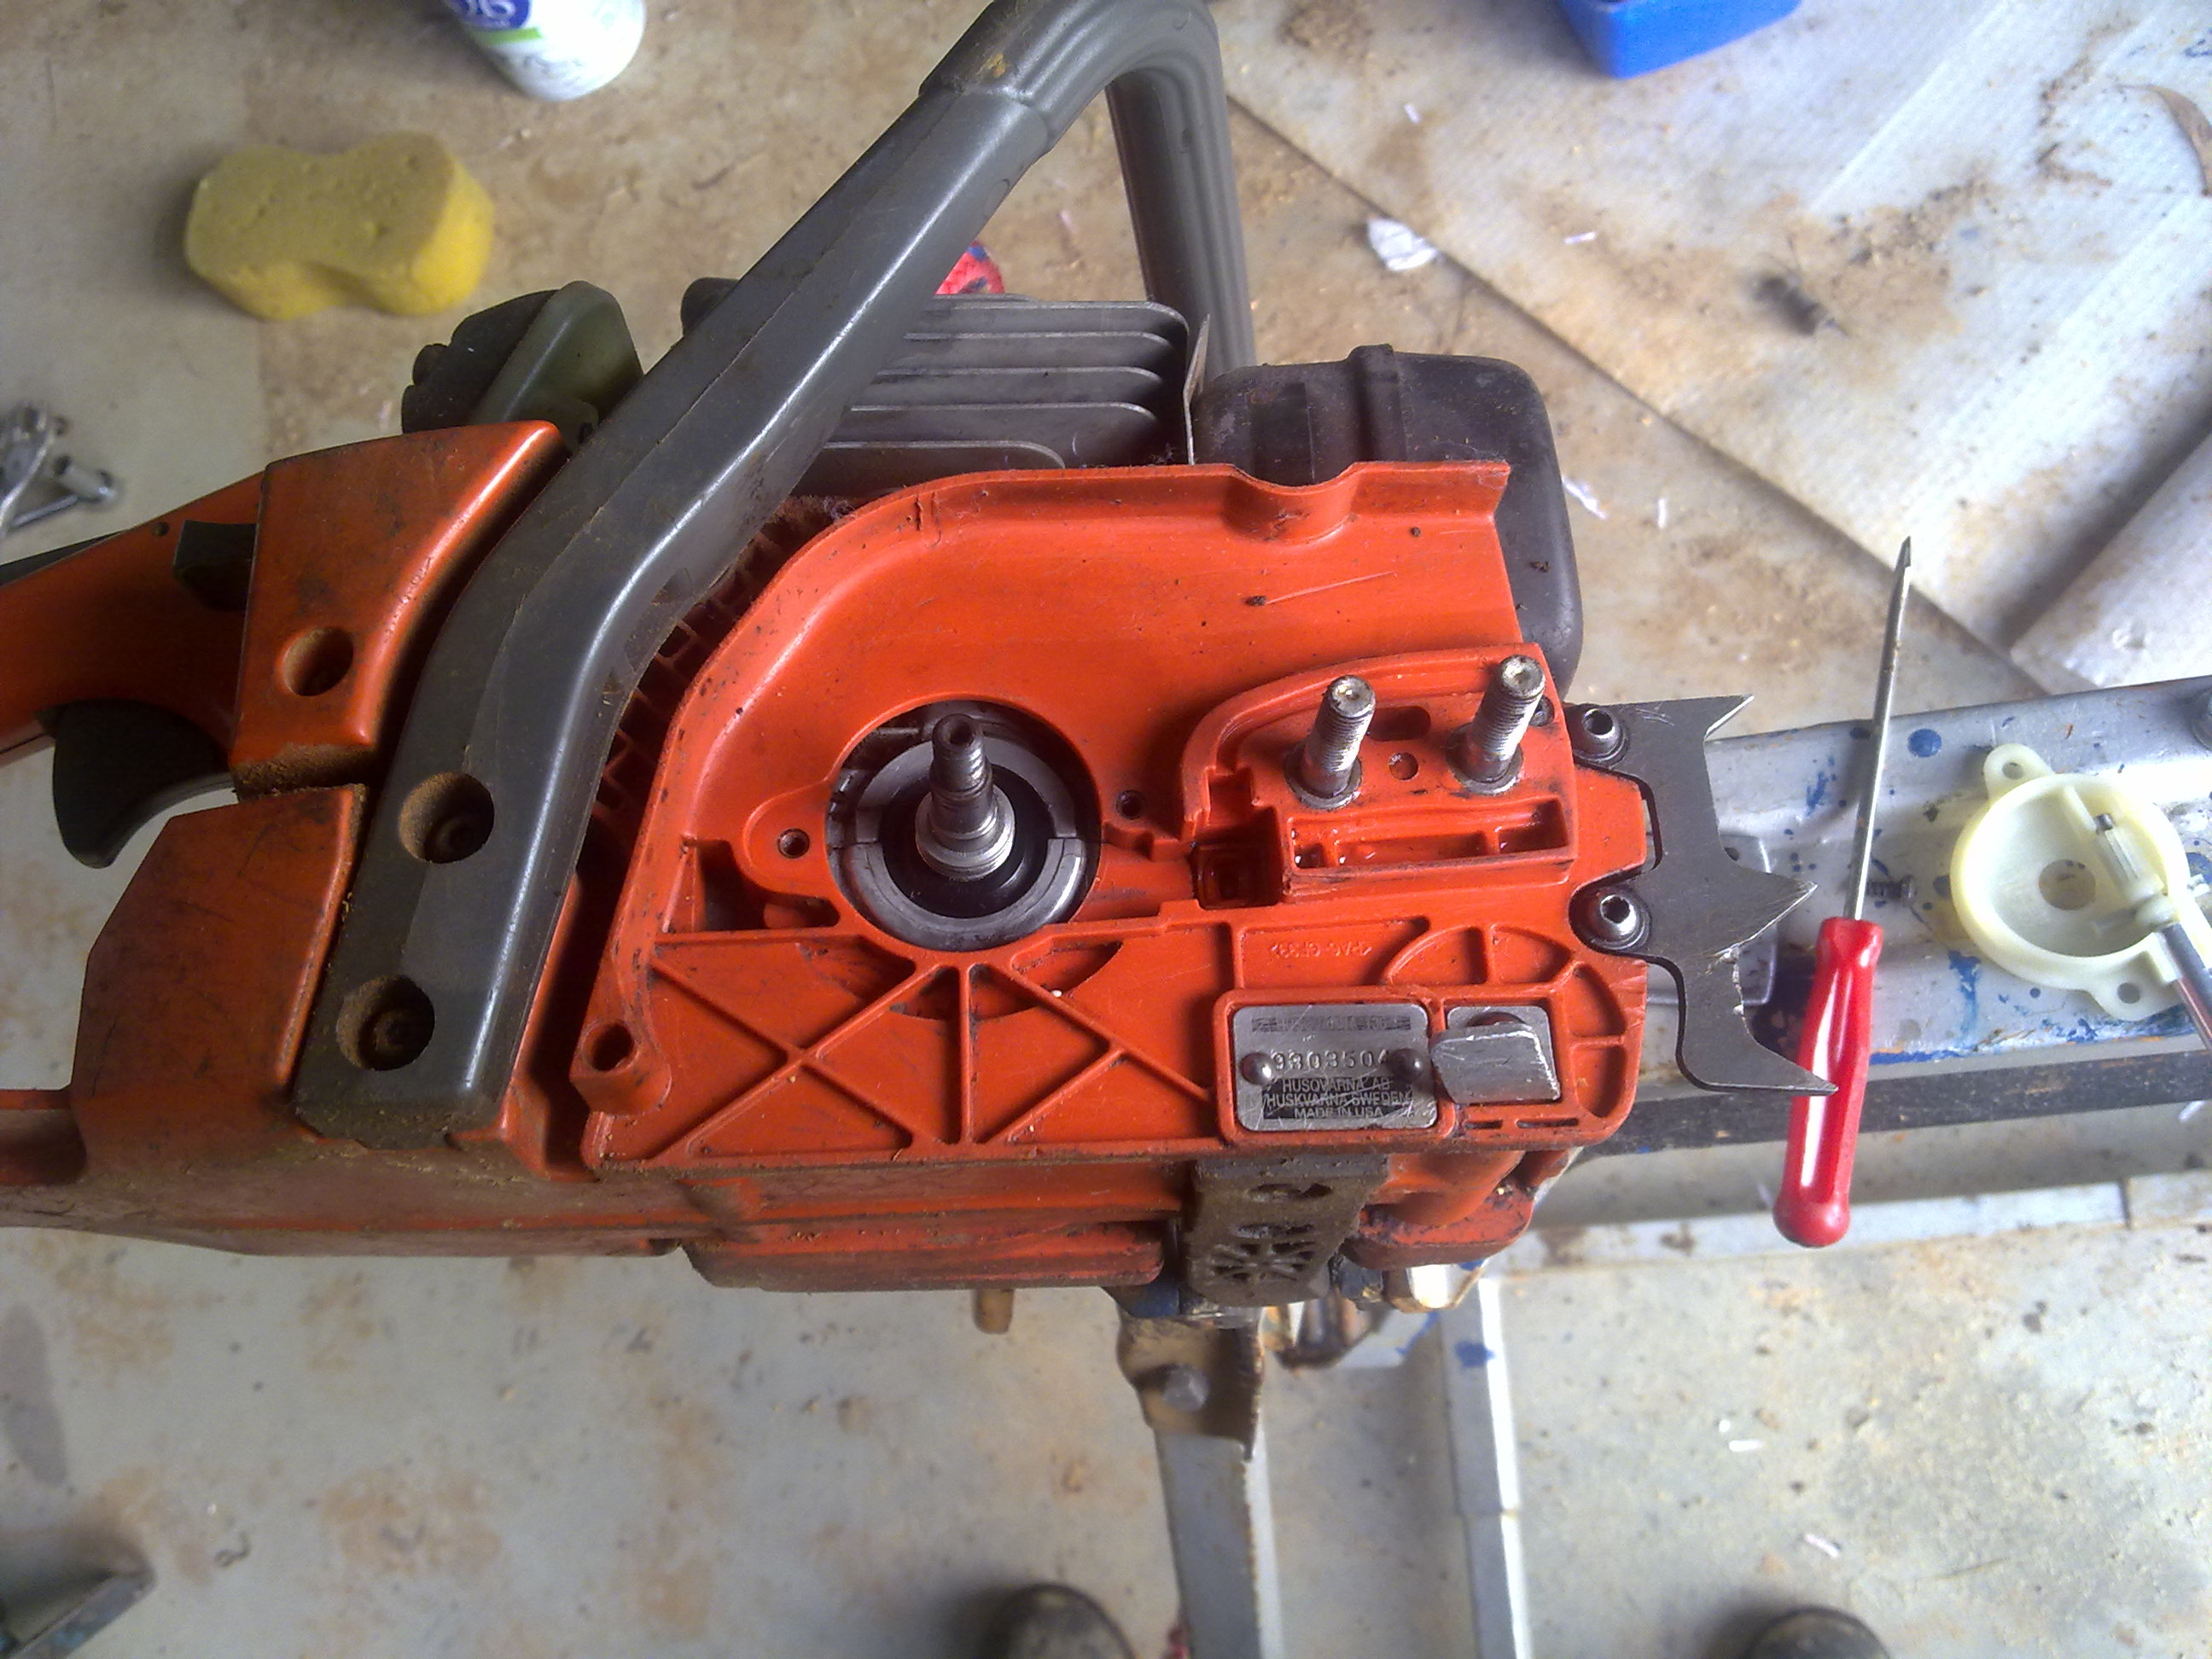 Replacing an oil pump in a husqvarnapoulancraftsmanjohnsered 1 oil pump fully removed 2 new oil pump installed greentooth